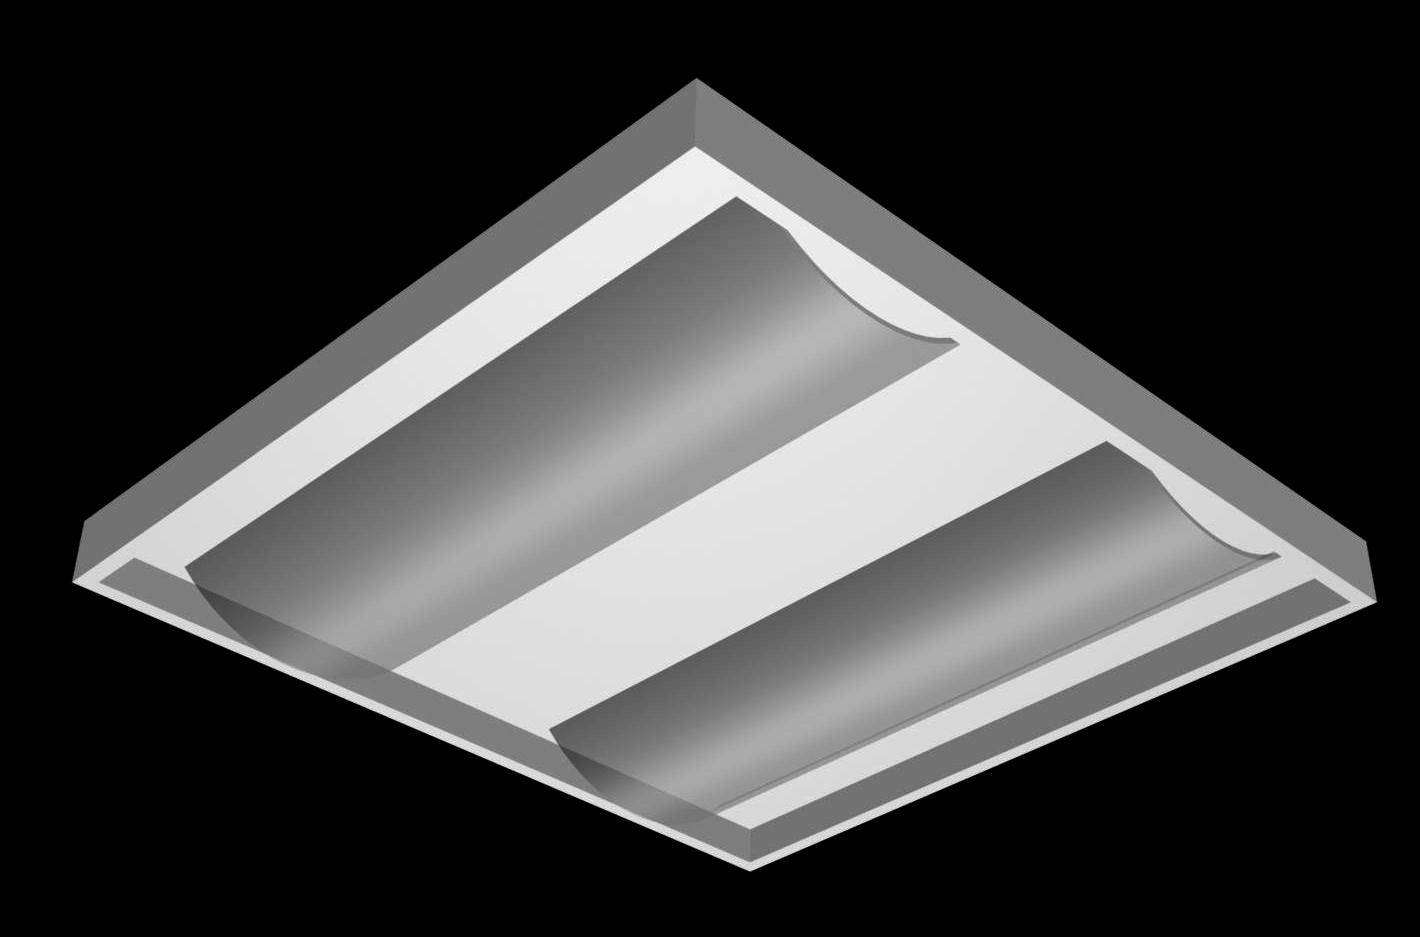 Grid Ceiling Light Fixture 3d Model